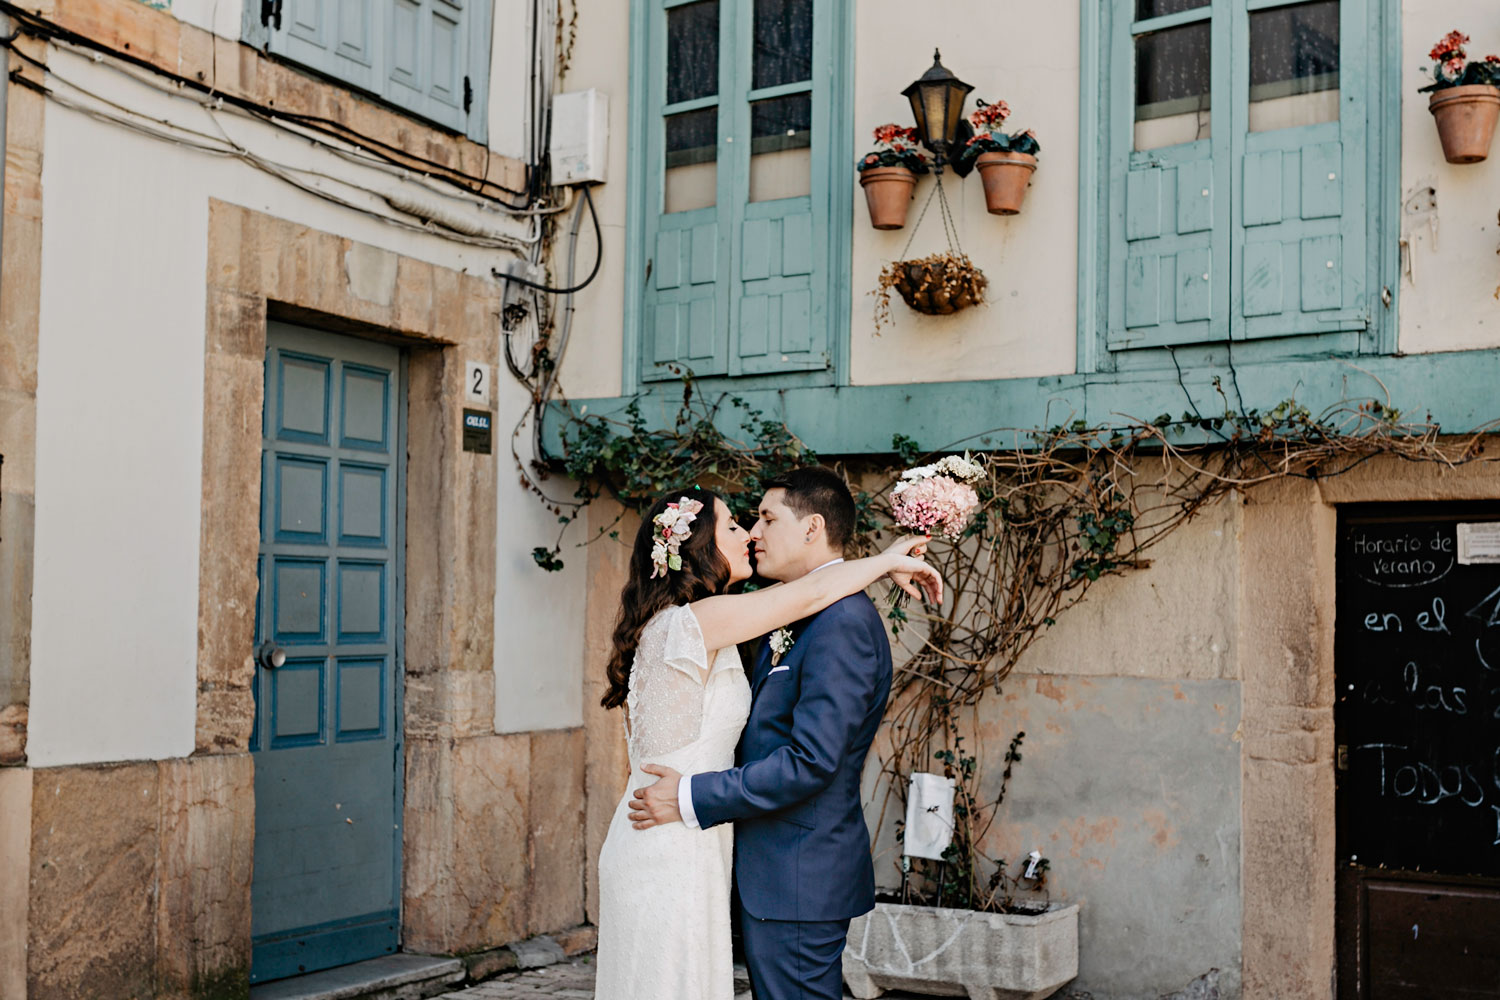 Fotos de boda en el casco antiguo